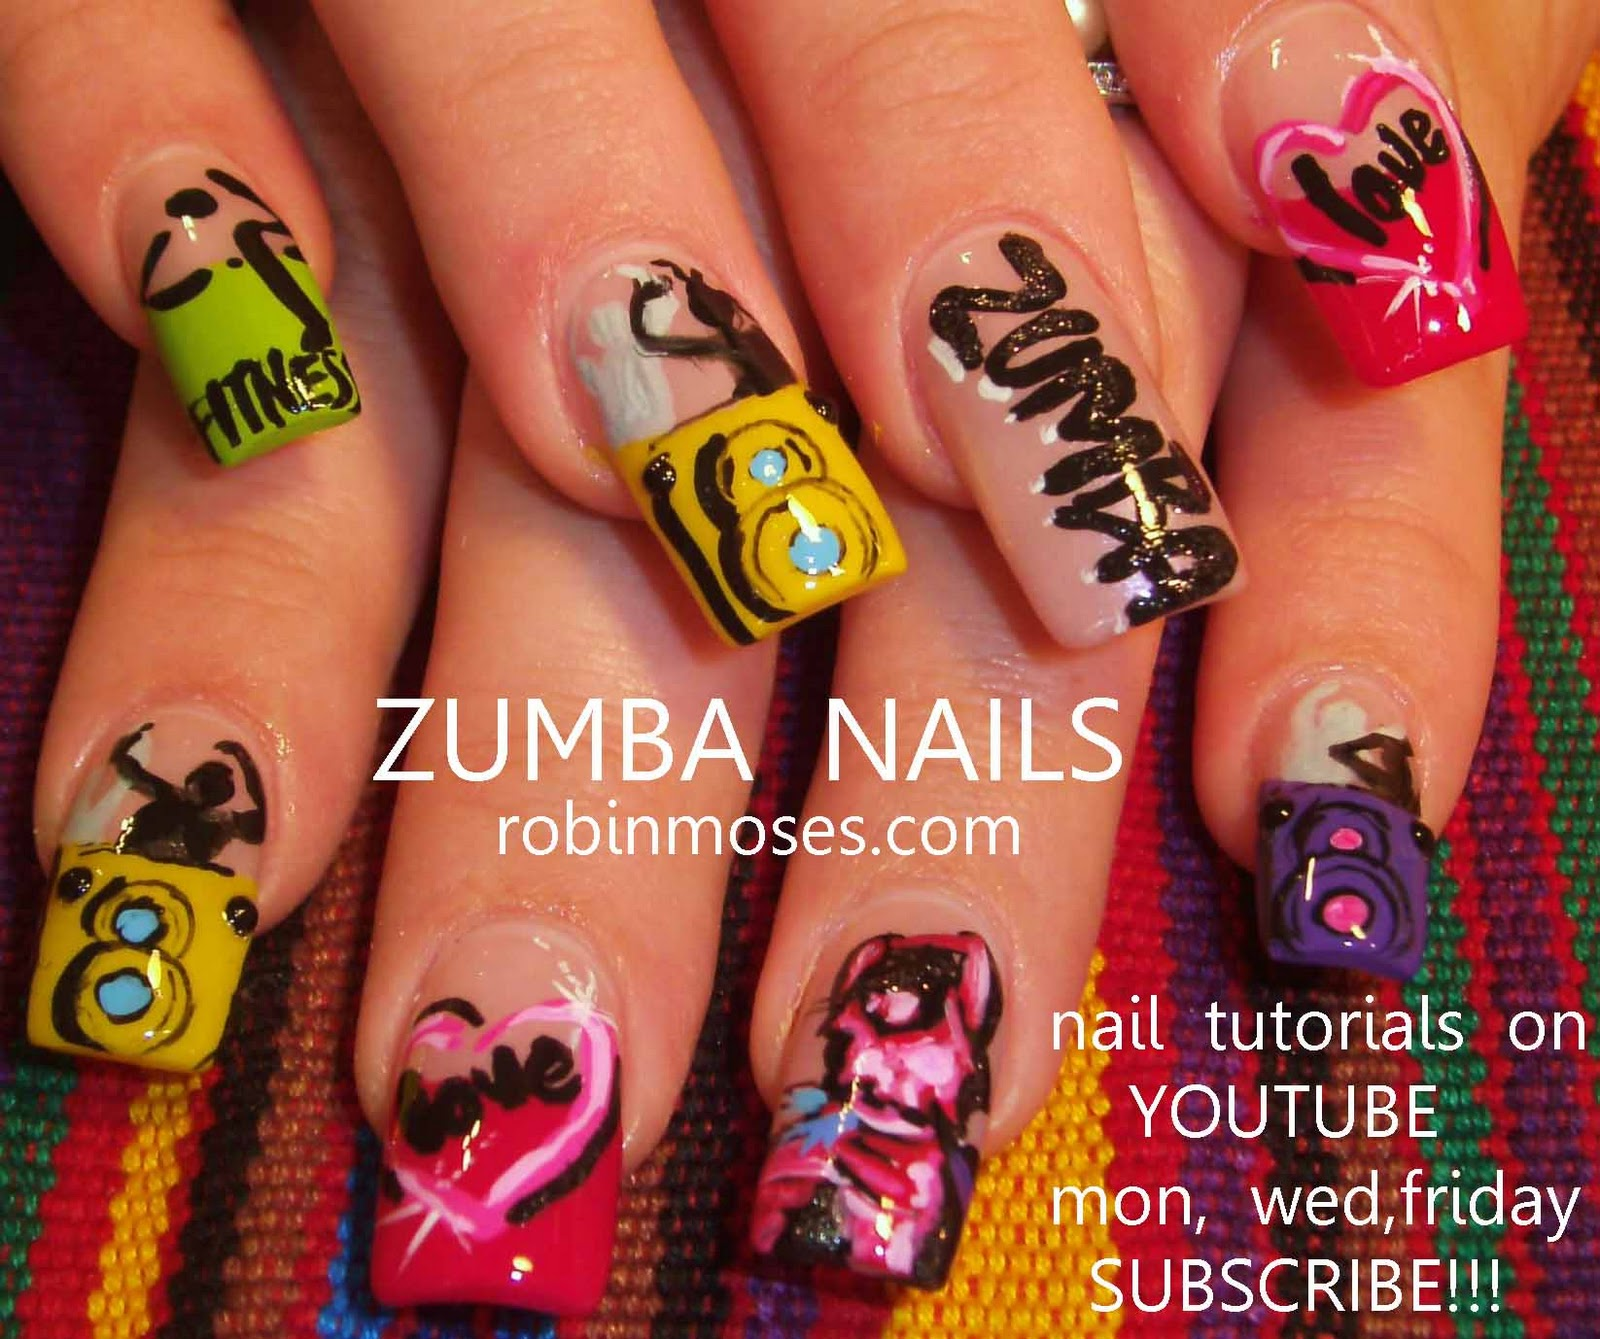 Oval nails zumba nails zumba dance design your own nail art